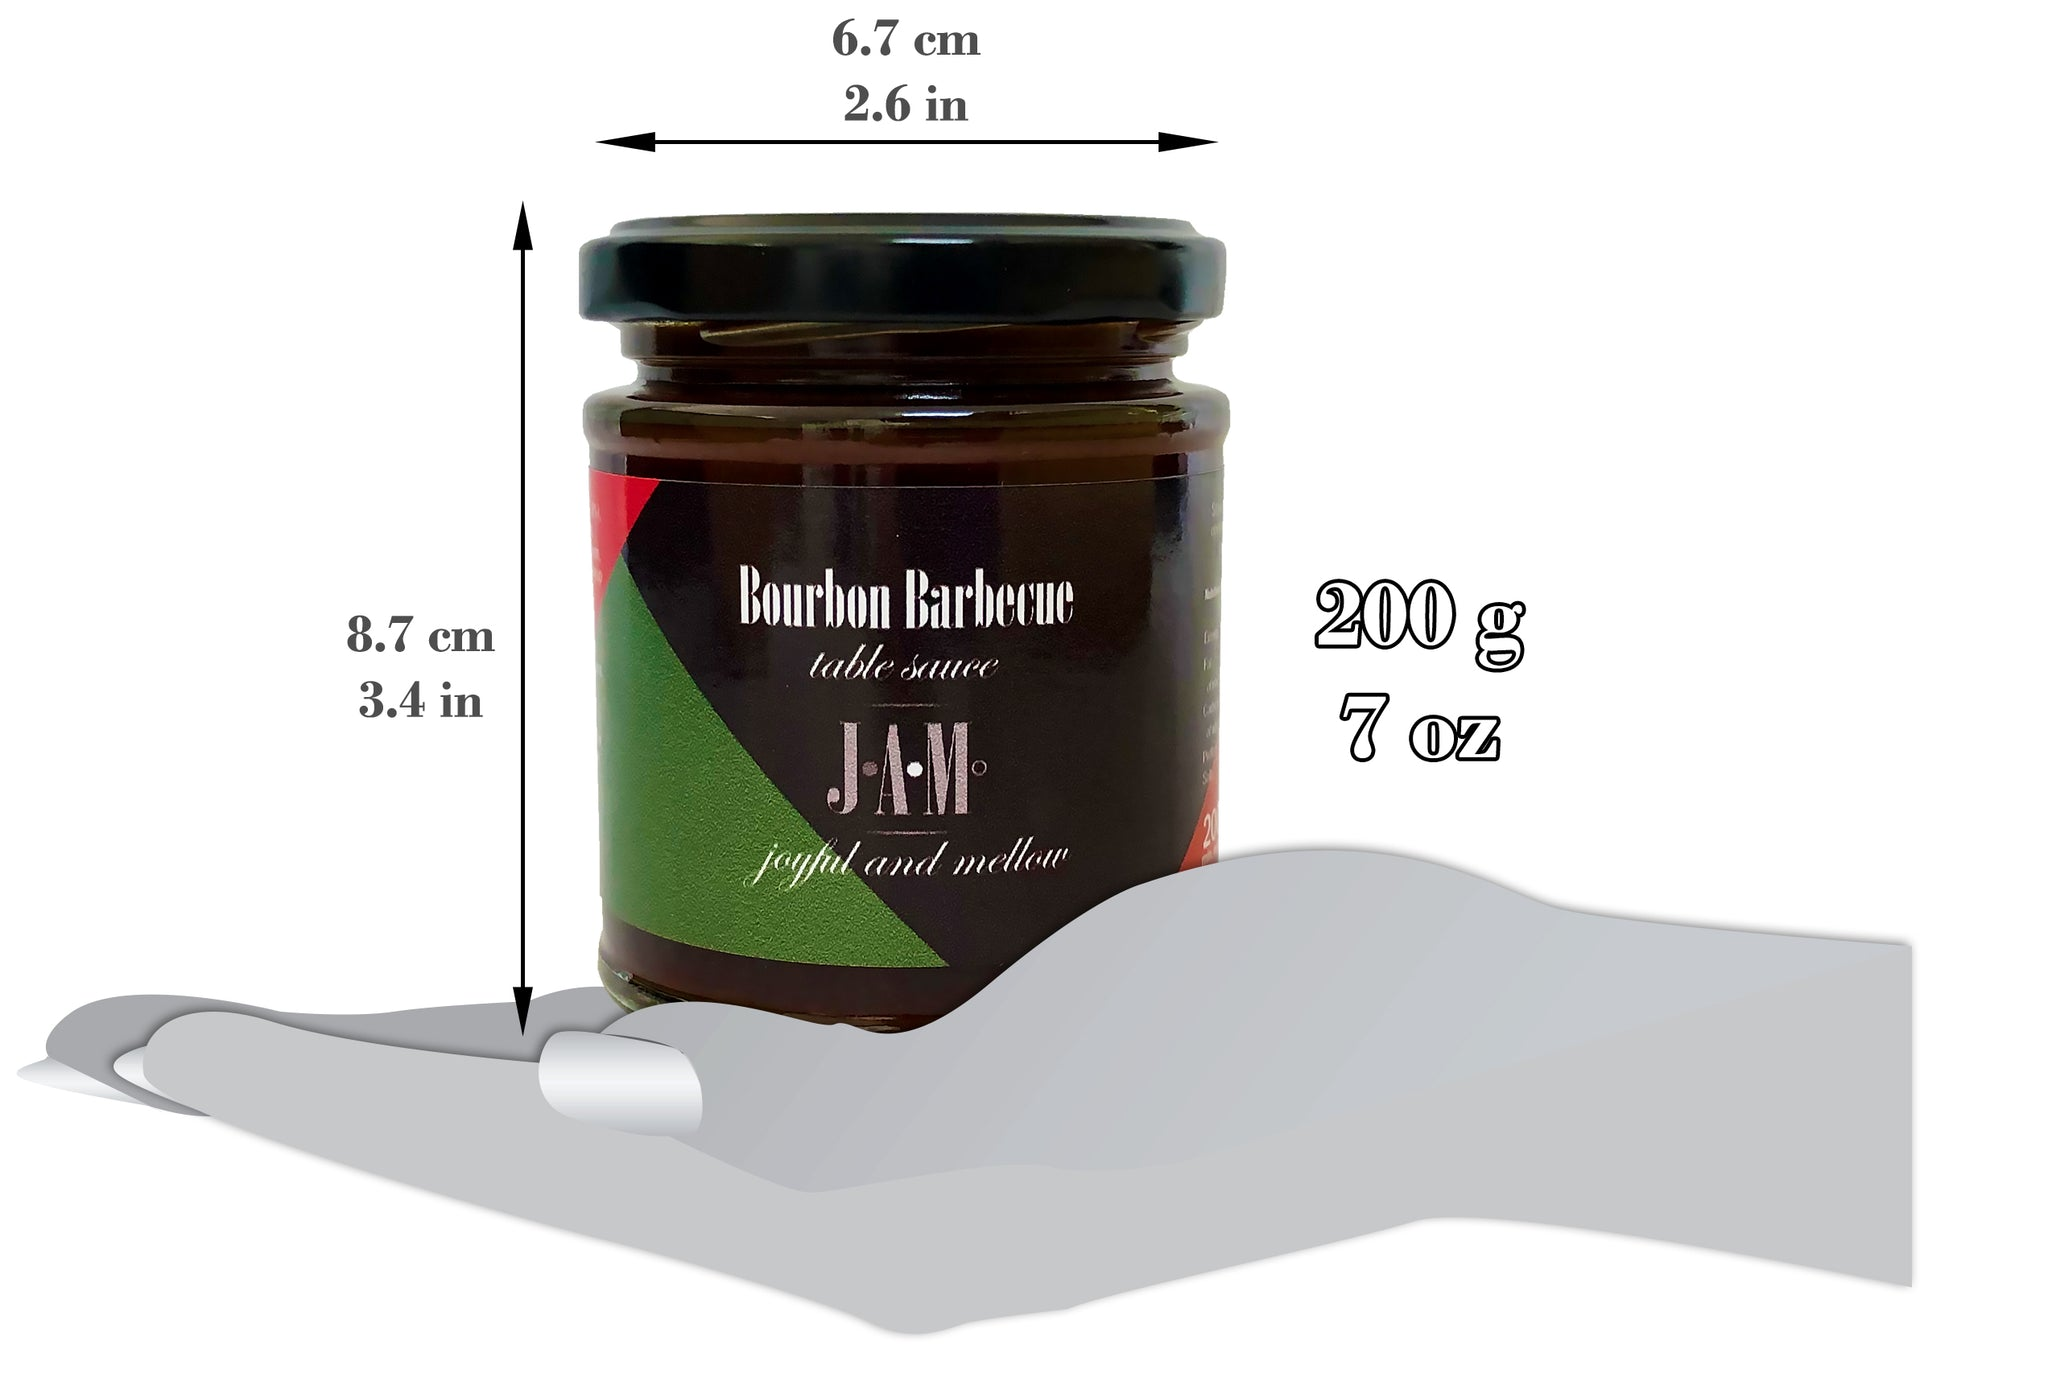 Bourbon Barbecue Table Sauce (200g ~ 7oz)